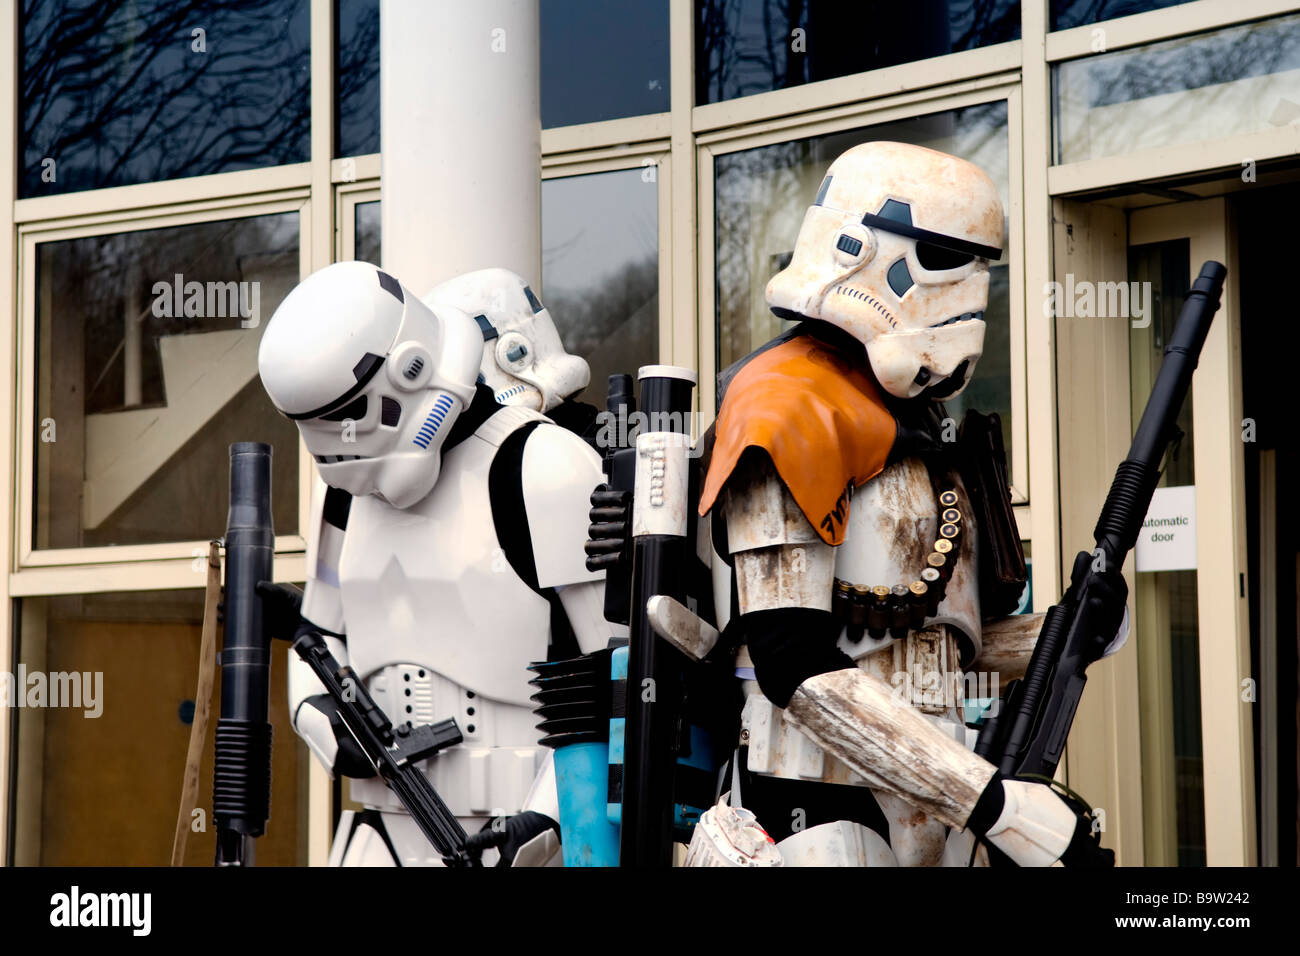 Star Wars storm troopers characters at a sci-fi day held at the Bradford on Avon library in Wiltshire Stock Photo